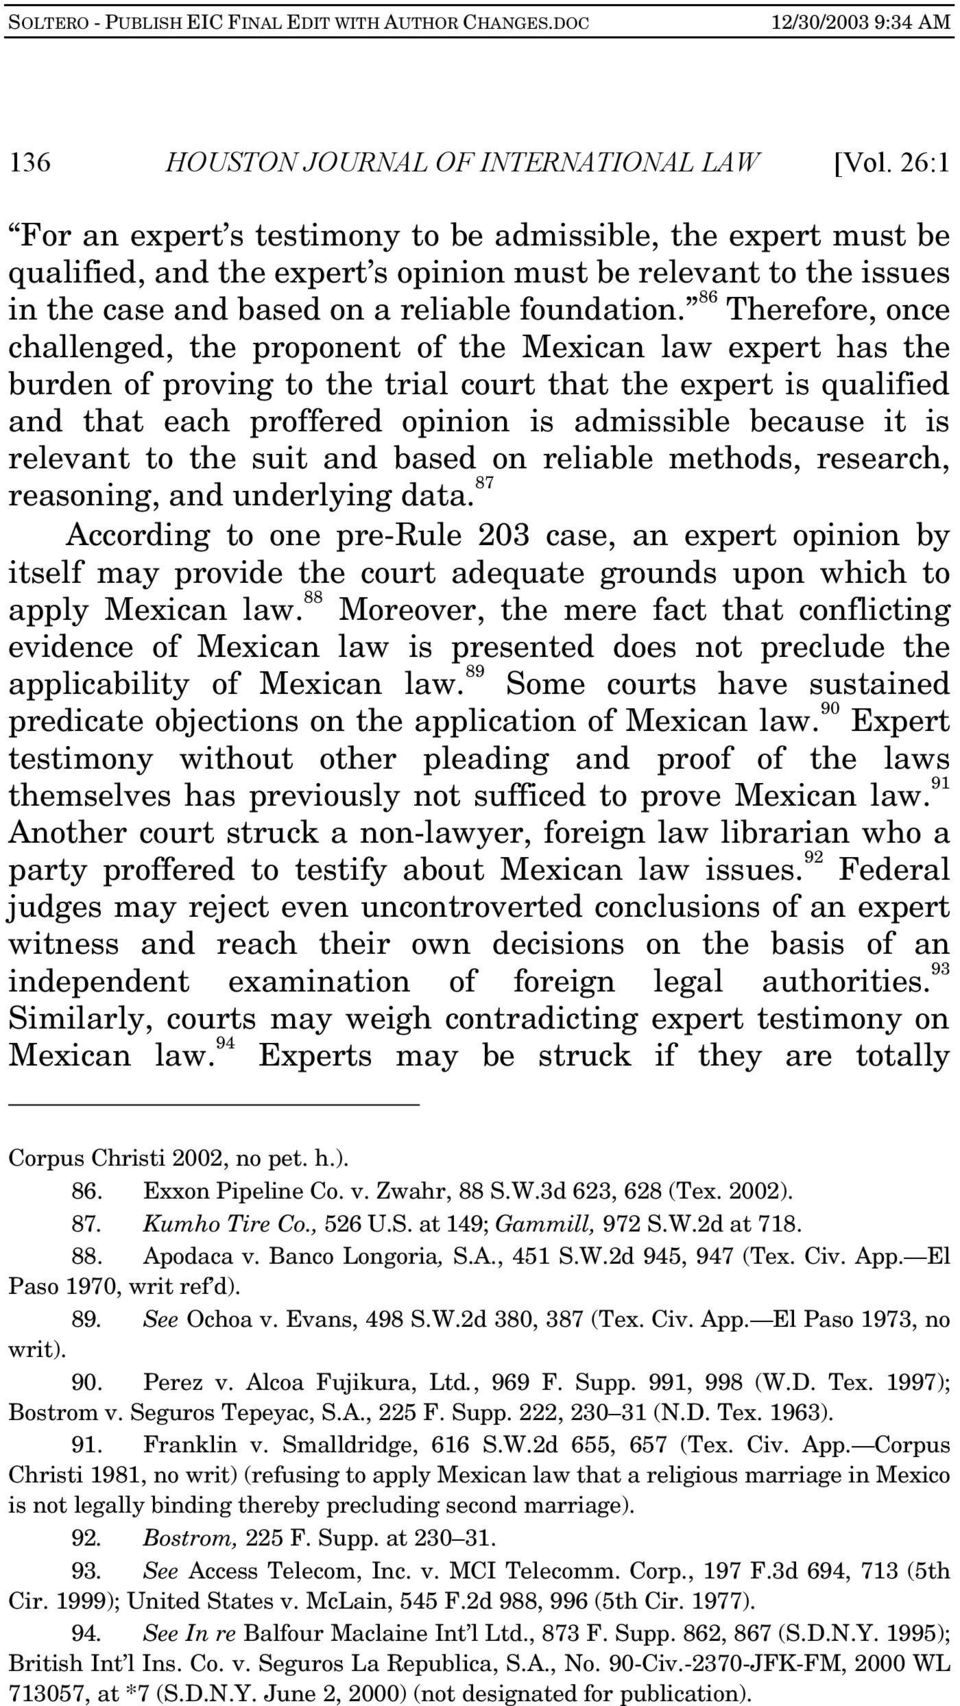 86 Therefore, once challenged, the proponent of the Mexican law expert has the burden of proving to the trial court that the expert is qualified and that each proffered opinion is admissible because